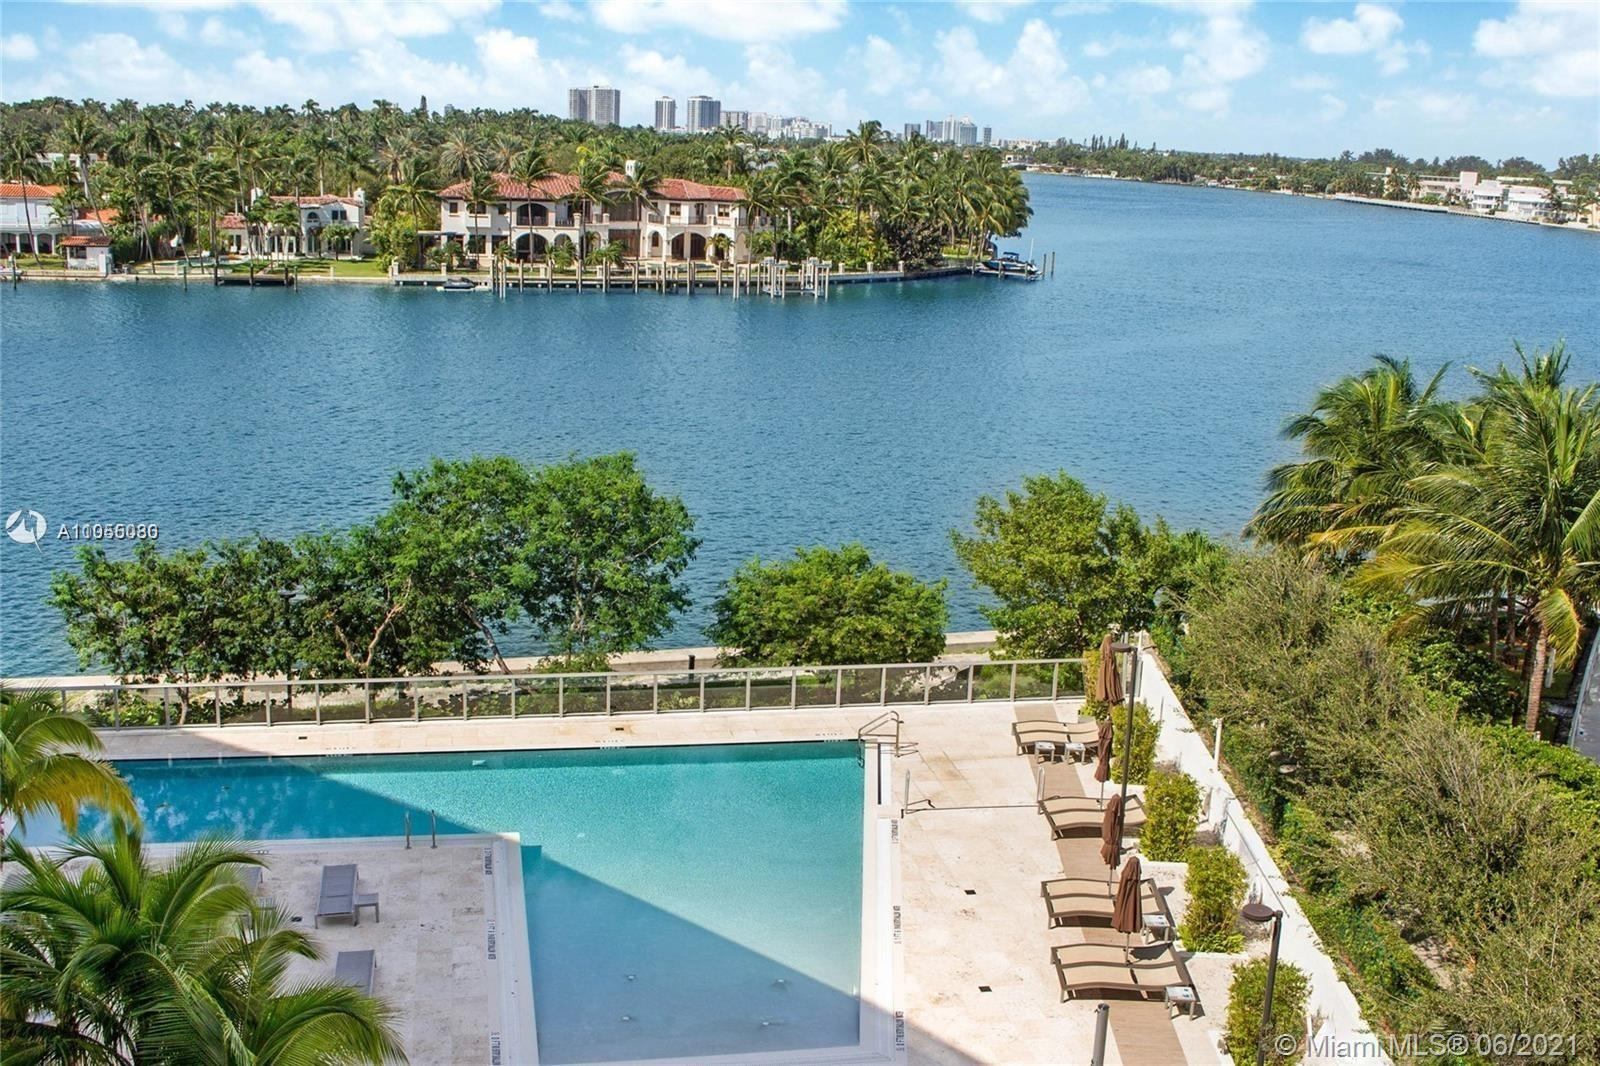 Beautiful 2/2 unit with intracoastal view at Peloro designed by Luis Revuelta, ceramic floors throughout. Kitchen with Granite counter top, and stainless steel appliances. walking distance to the beach. Beautiful lobby and common areas. Apartment may be rented 12 times a year. Amenities include: a grand atrium and waterfalls, waterfront pool, fitness center, valet parking, and concierge.